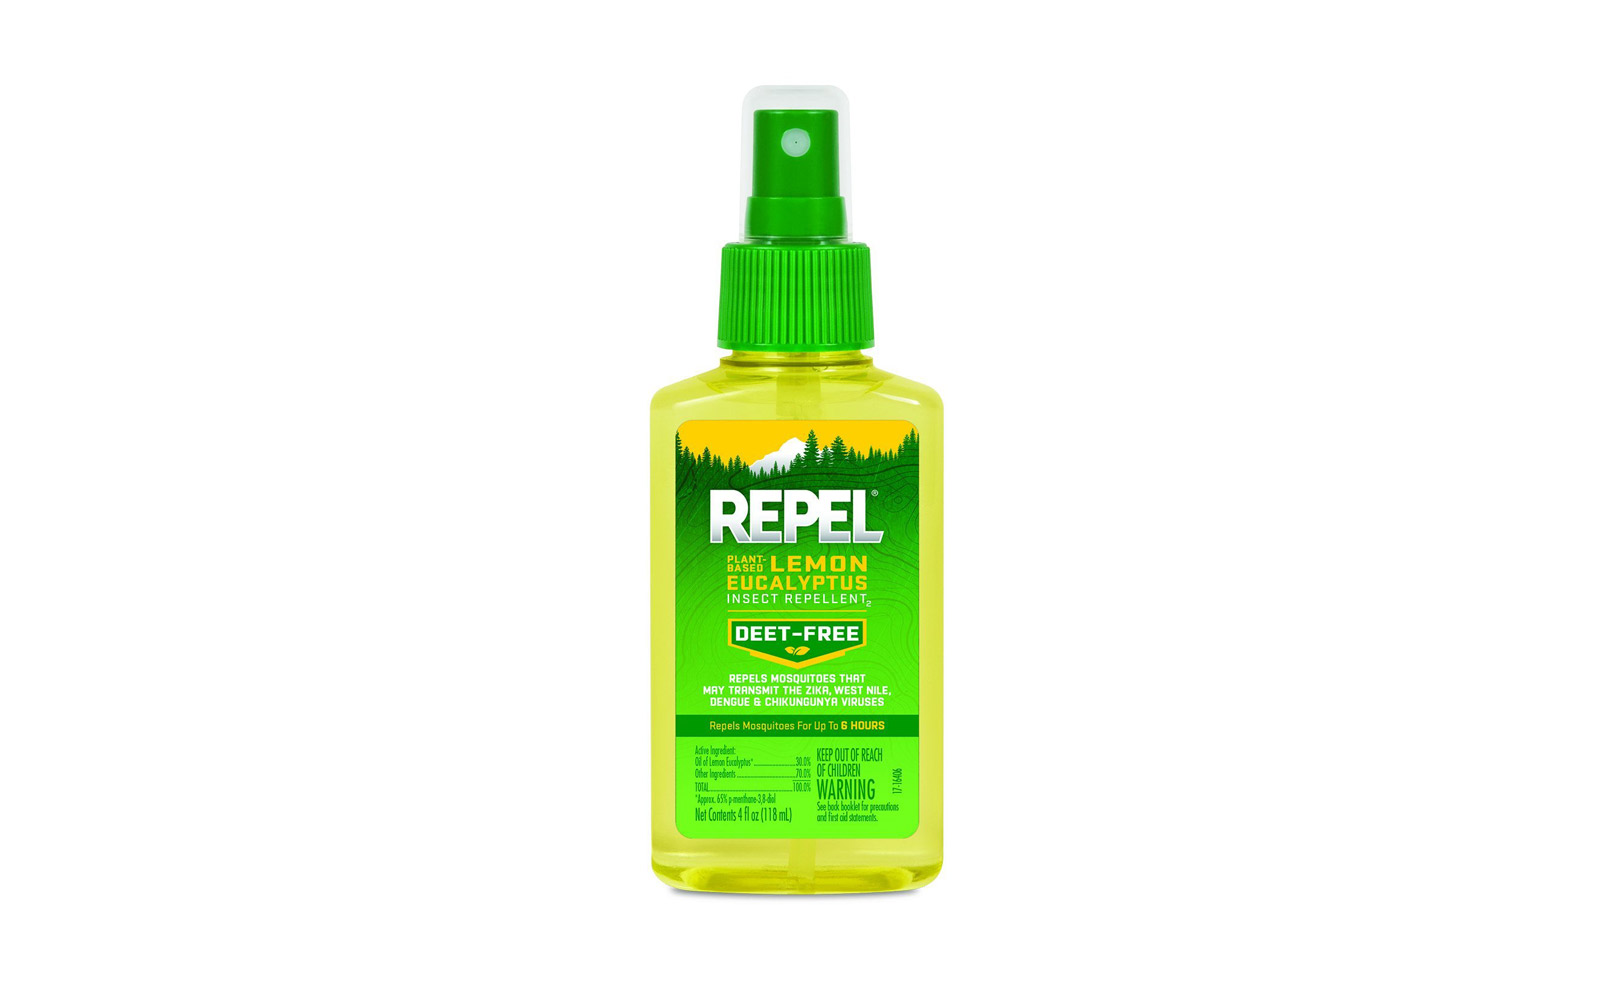 Repel Lemon Eucalyptus Natural Insect Repellent